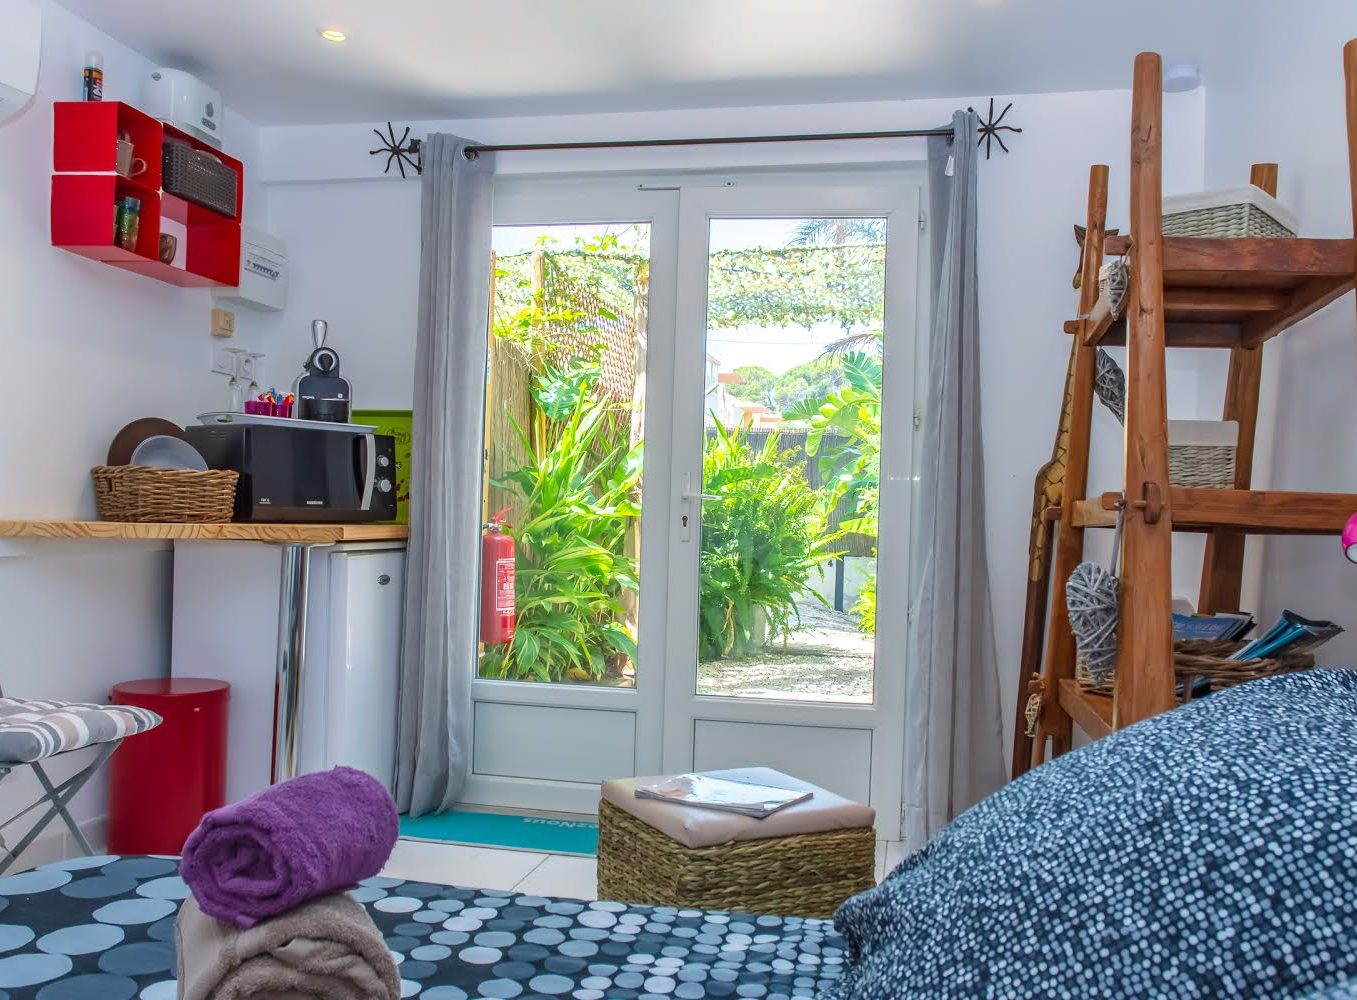 Rental guest room giens hyeres french riviera Mahinui piece